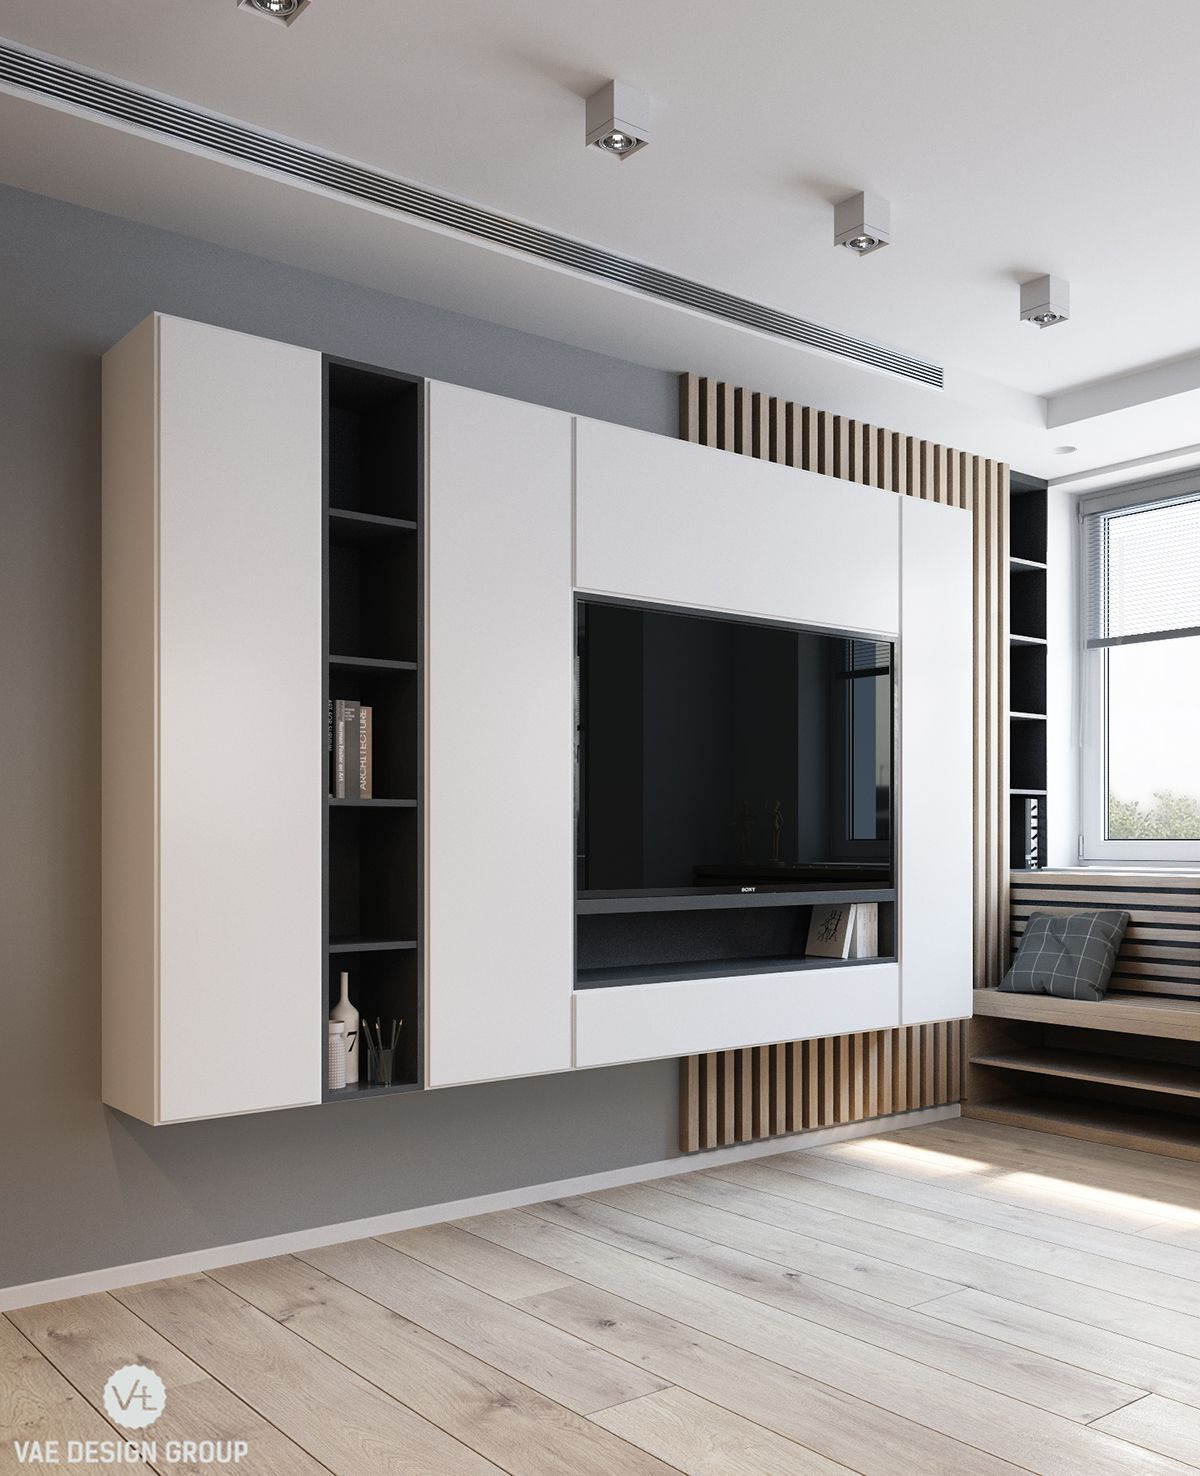 Wall Showcase Designs For Living Room Showcase And Discover Creative Work On The Worlds Leading Online